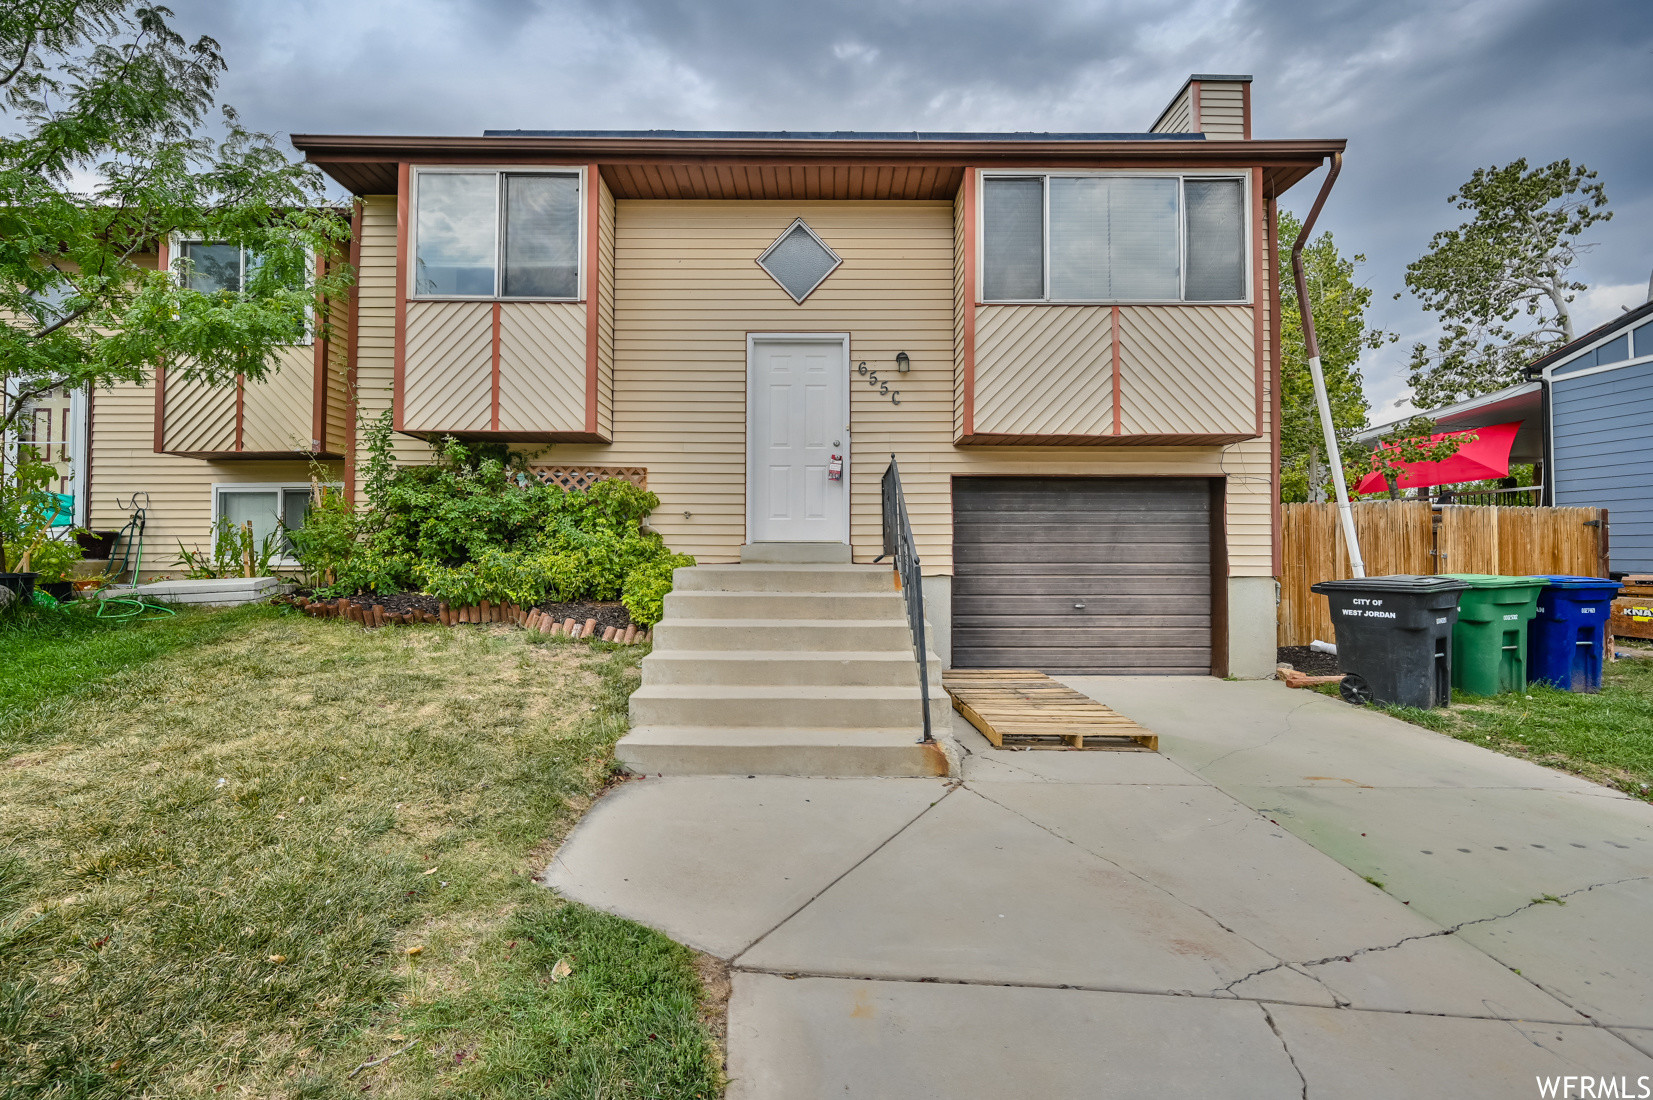 4-Bedroom House In Oquirrh Shadows